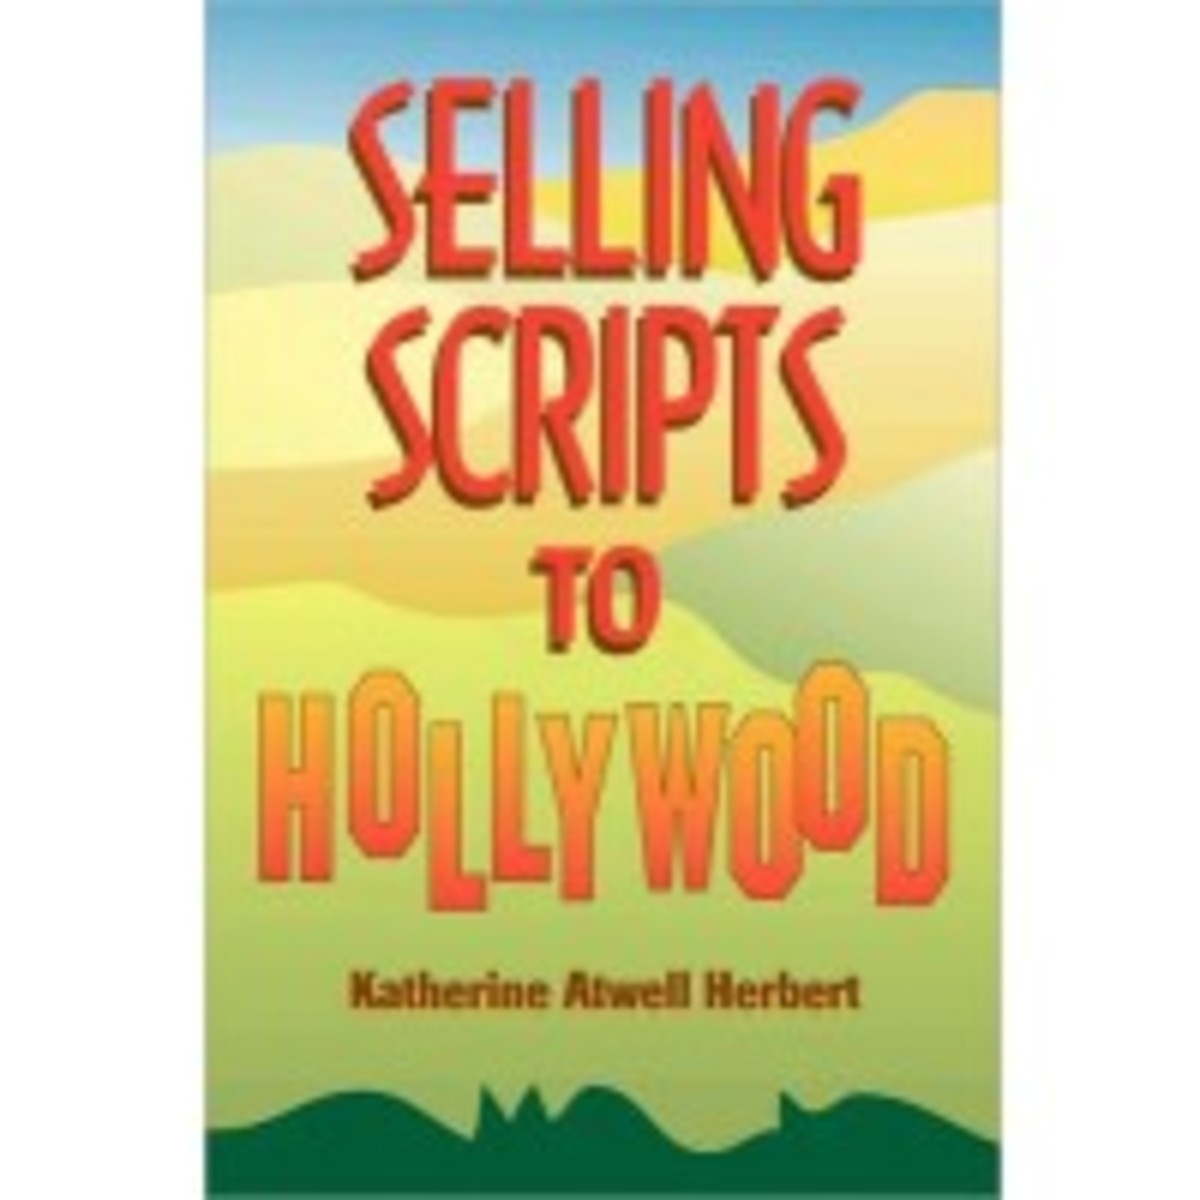 Selling Scripts to Hollywood